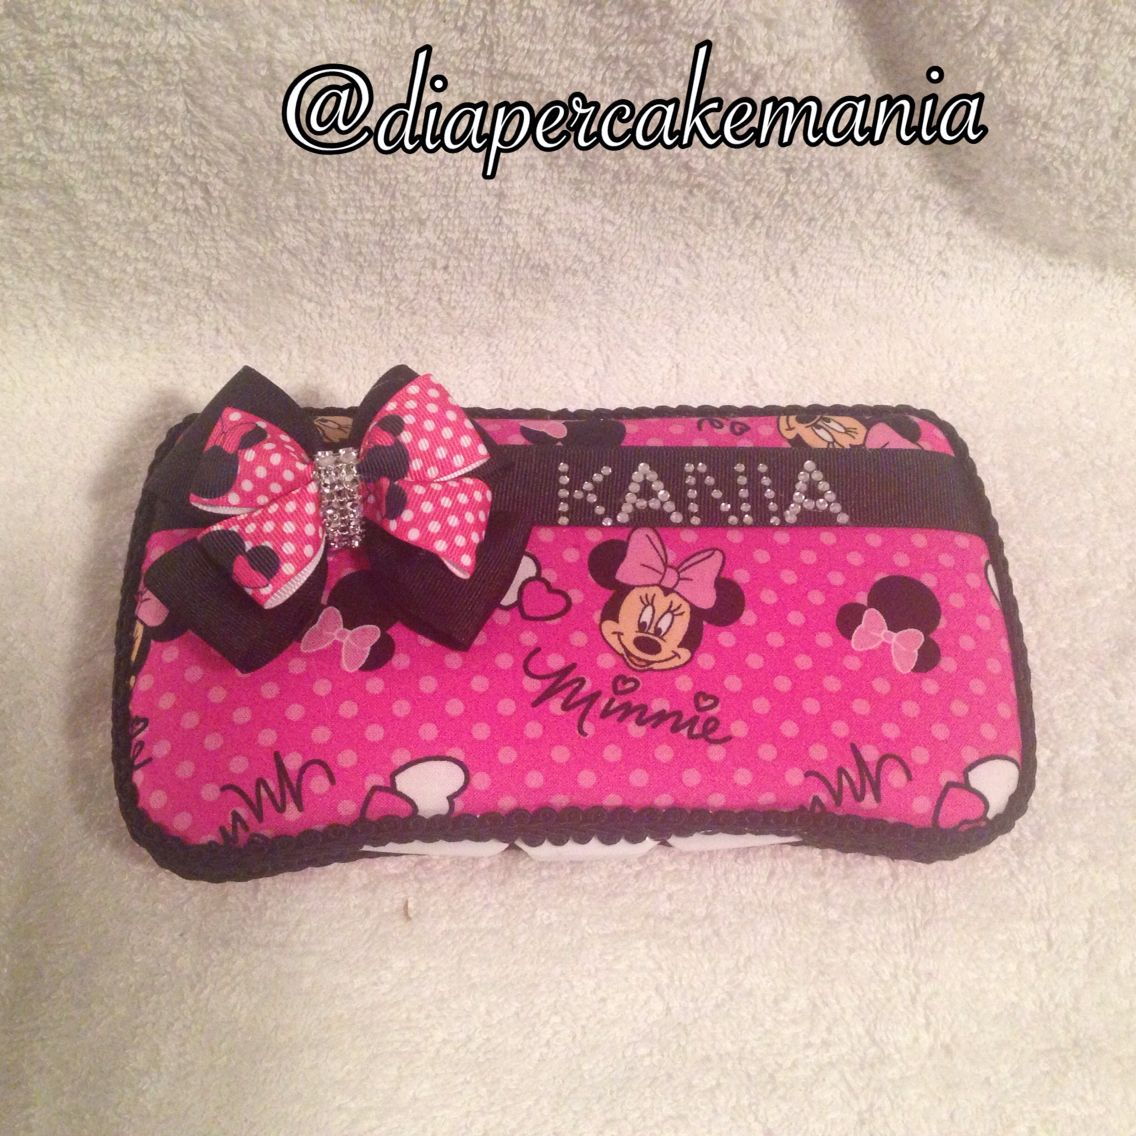 Minnie Mouse travel wipe case. 7542279804 Wet wipes case